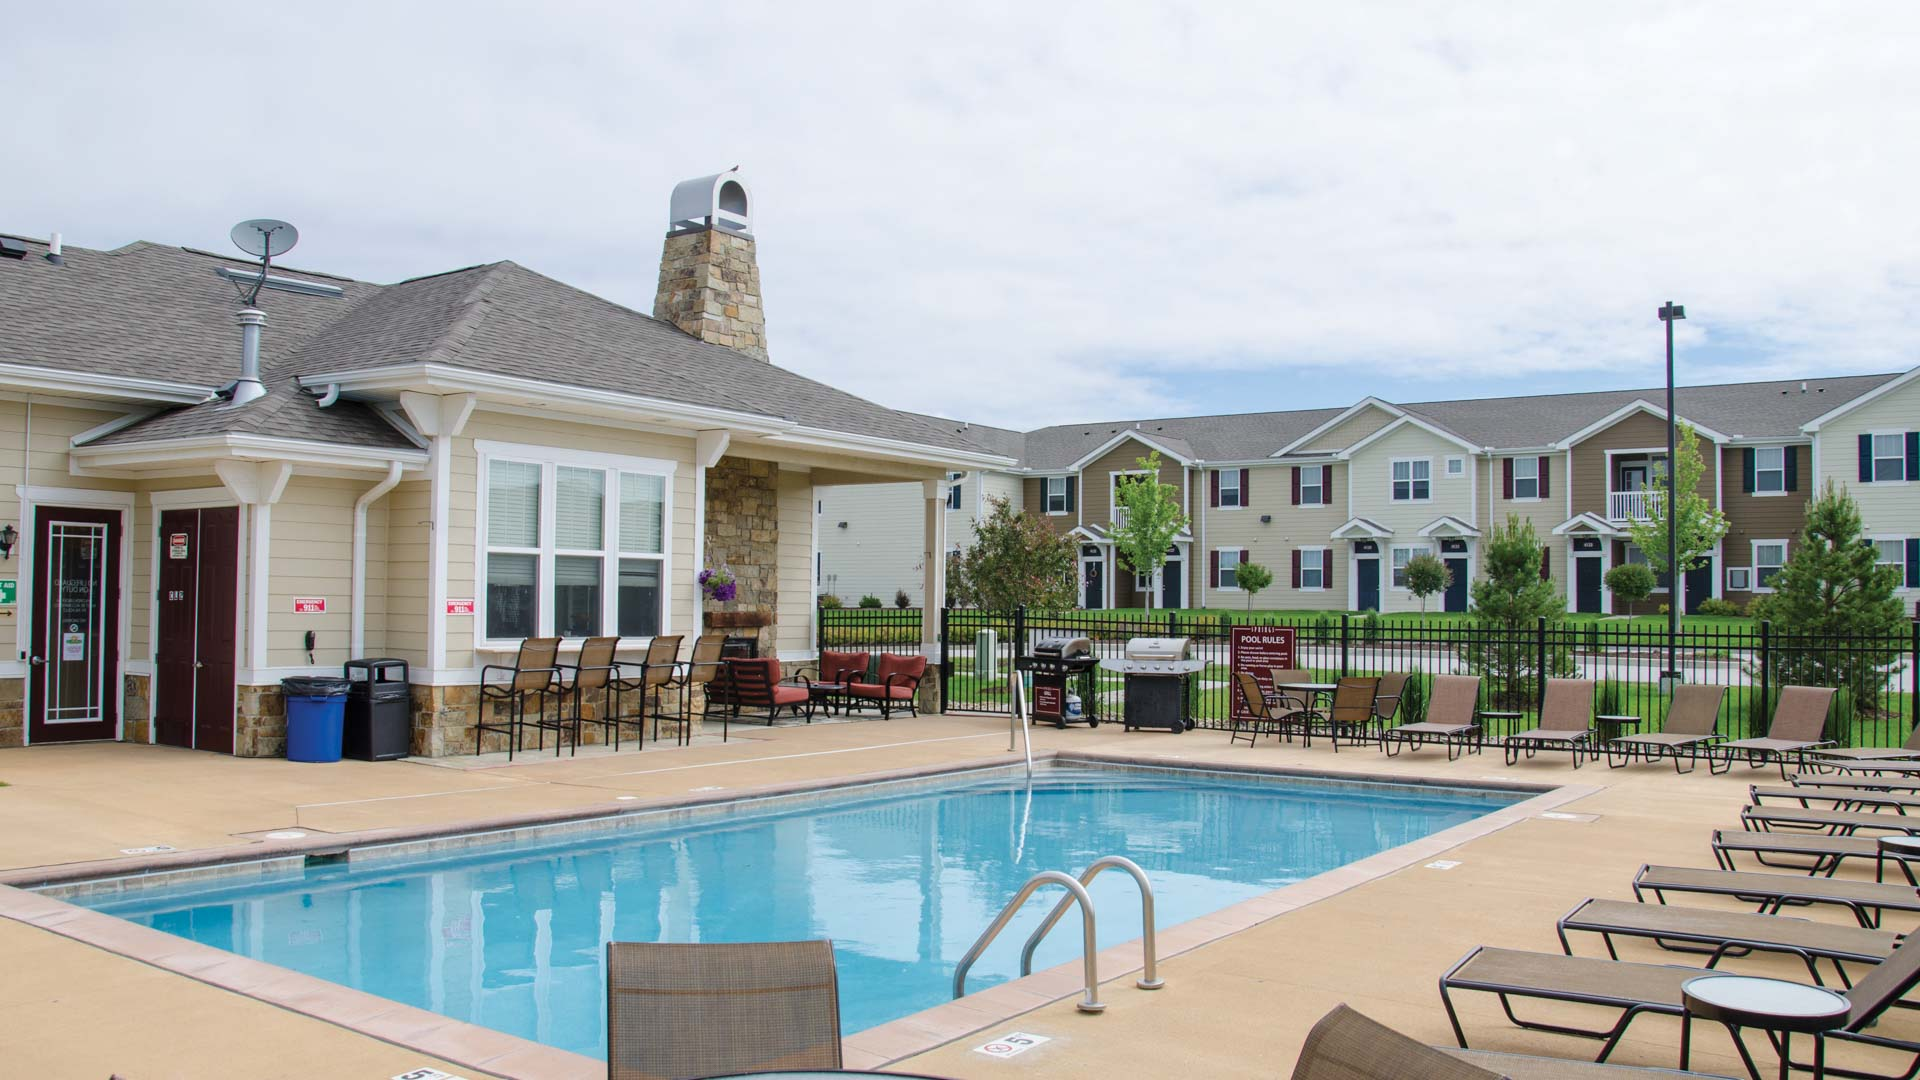 Pool at Springs at Bettendorf Apartments